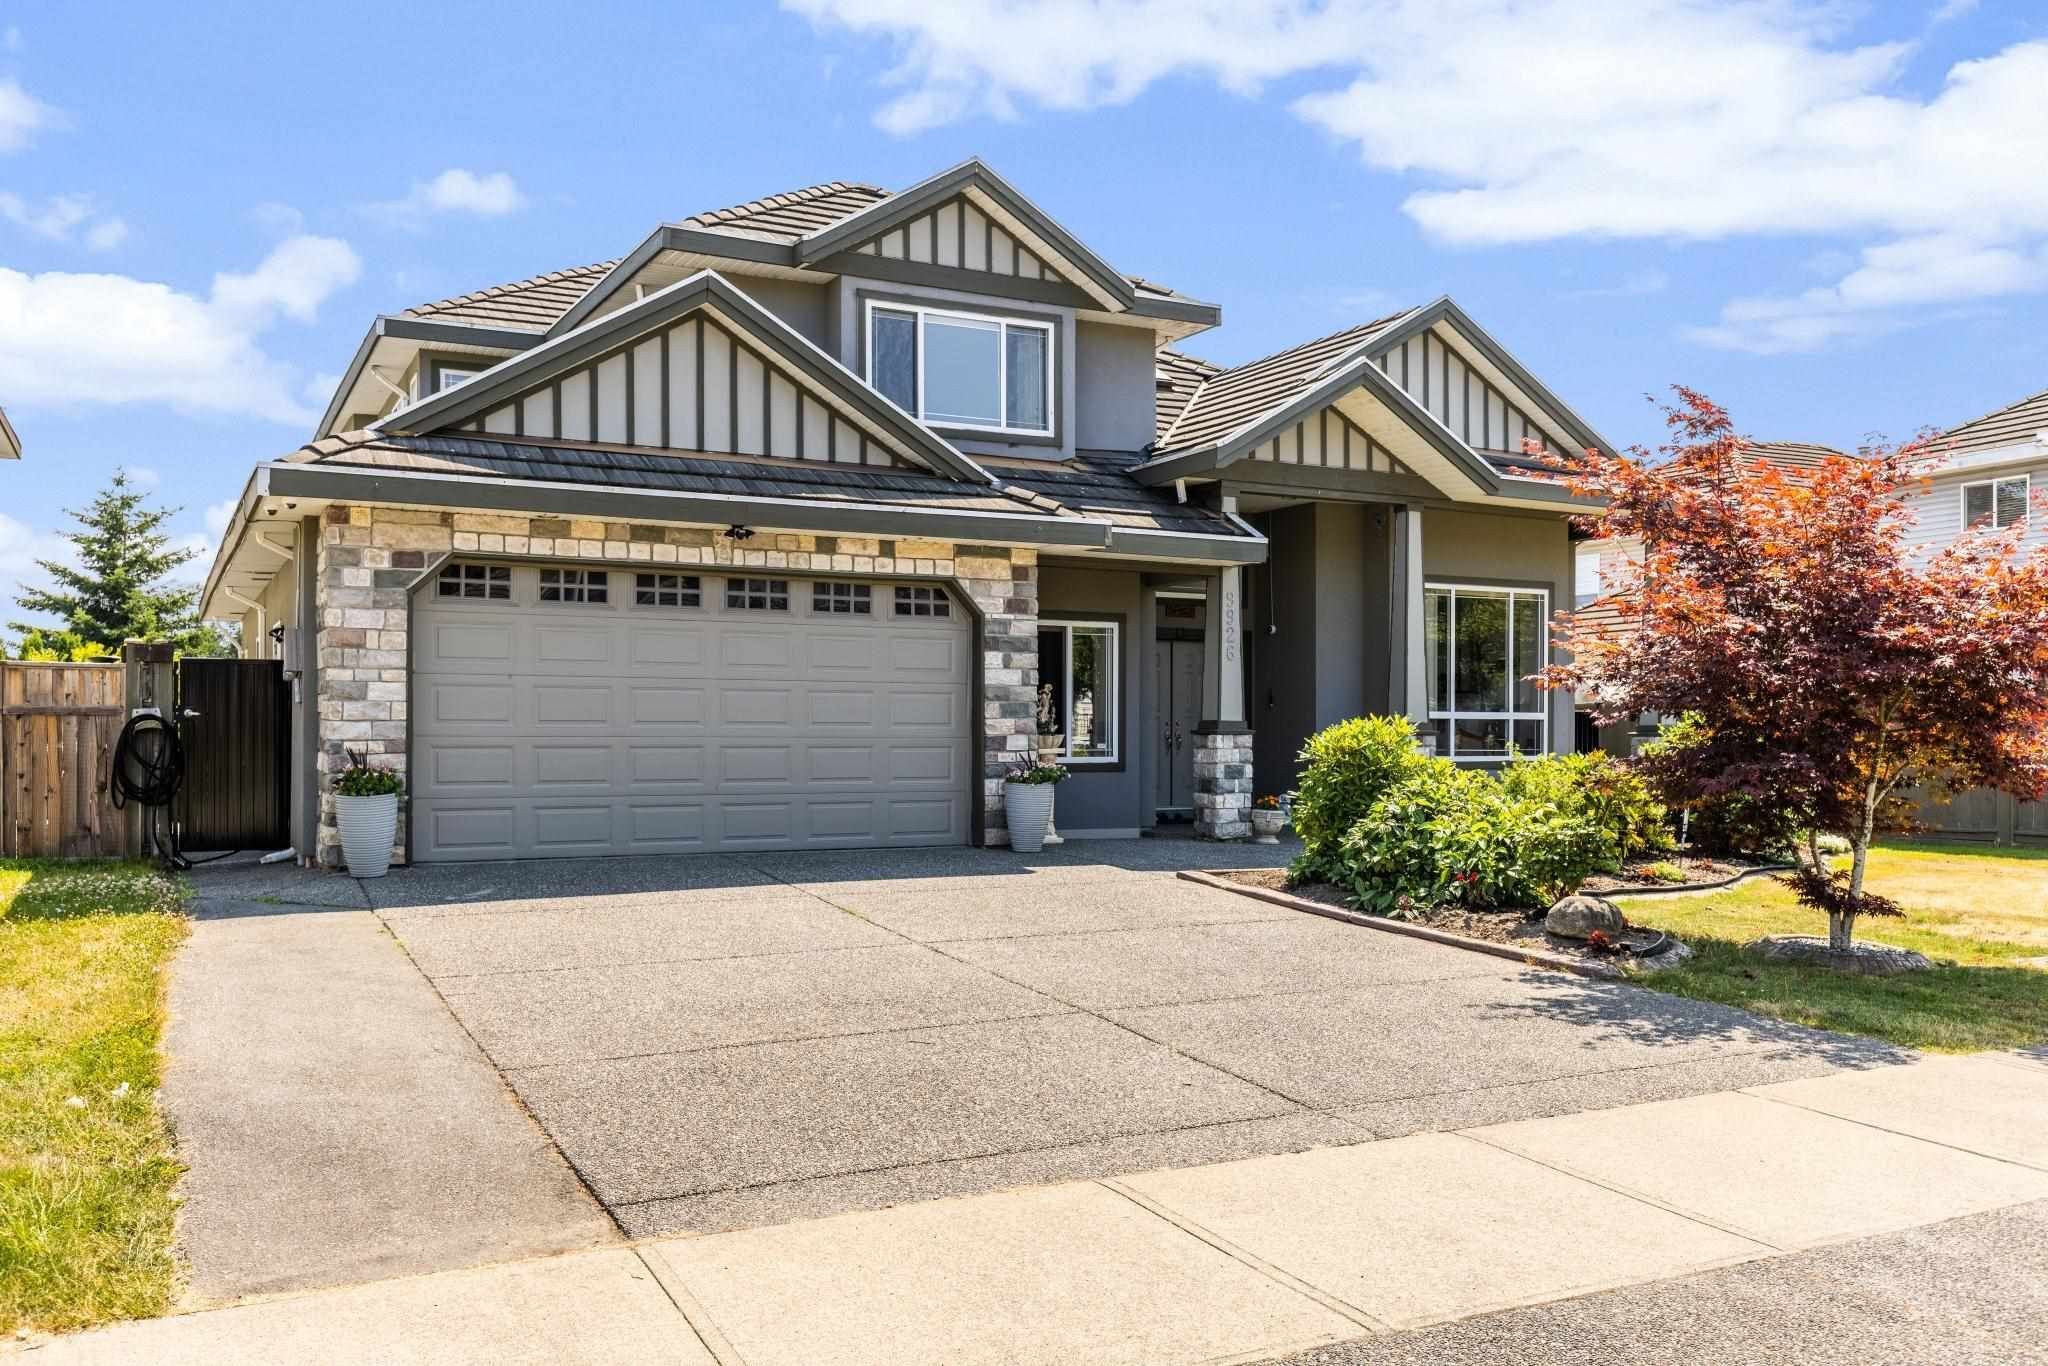 Main Photo: 9926 159 Street in Surrey: Guildford House for sale (North Surrey)  : MLS®# R2601106